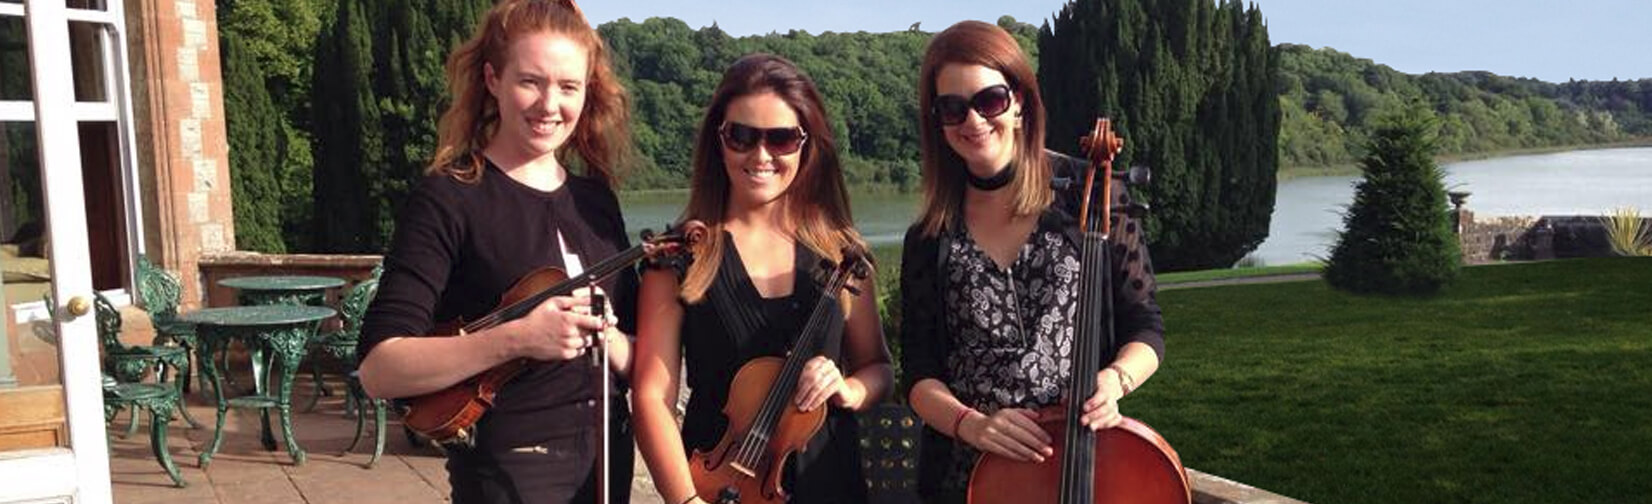 A talented string ensemble available for wedding receptions, ceremonies and other special occasions.